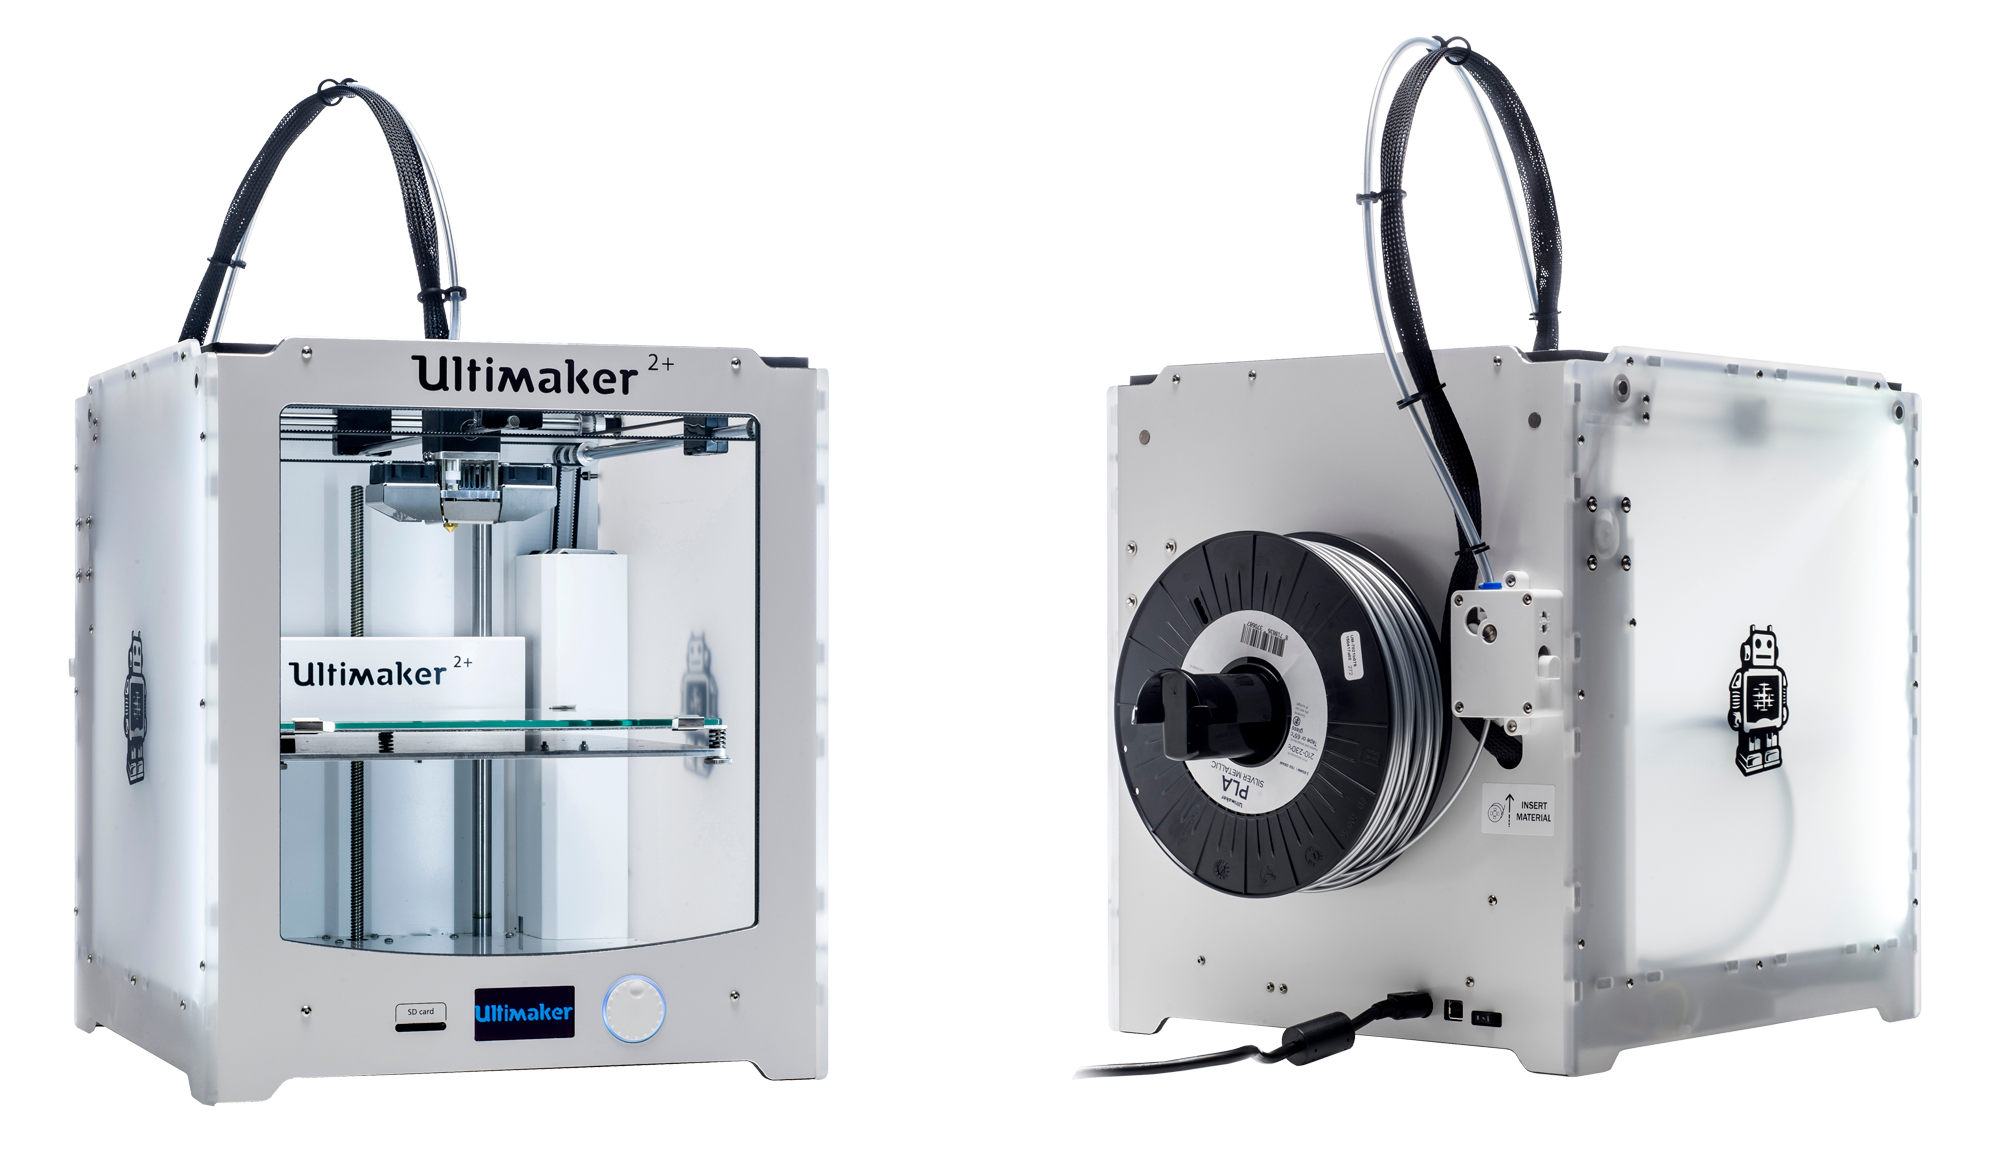 Ultimaker-2-Features